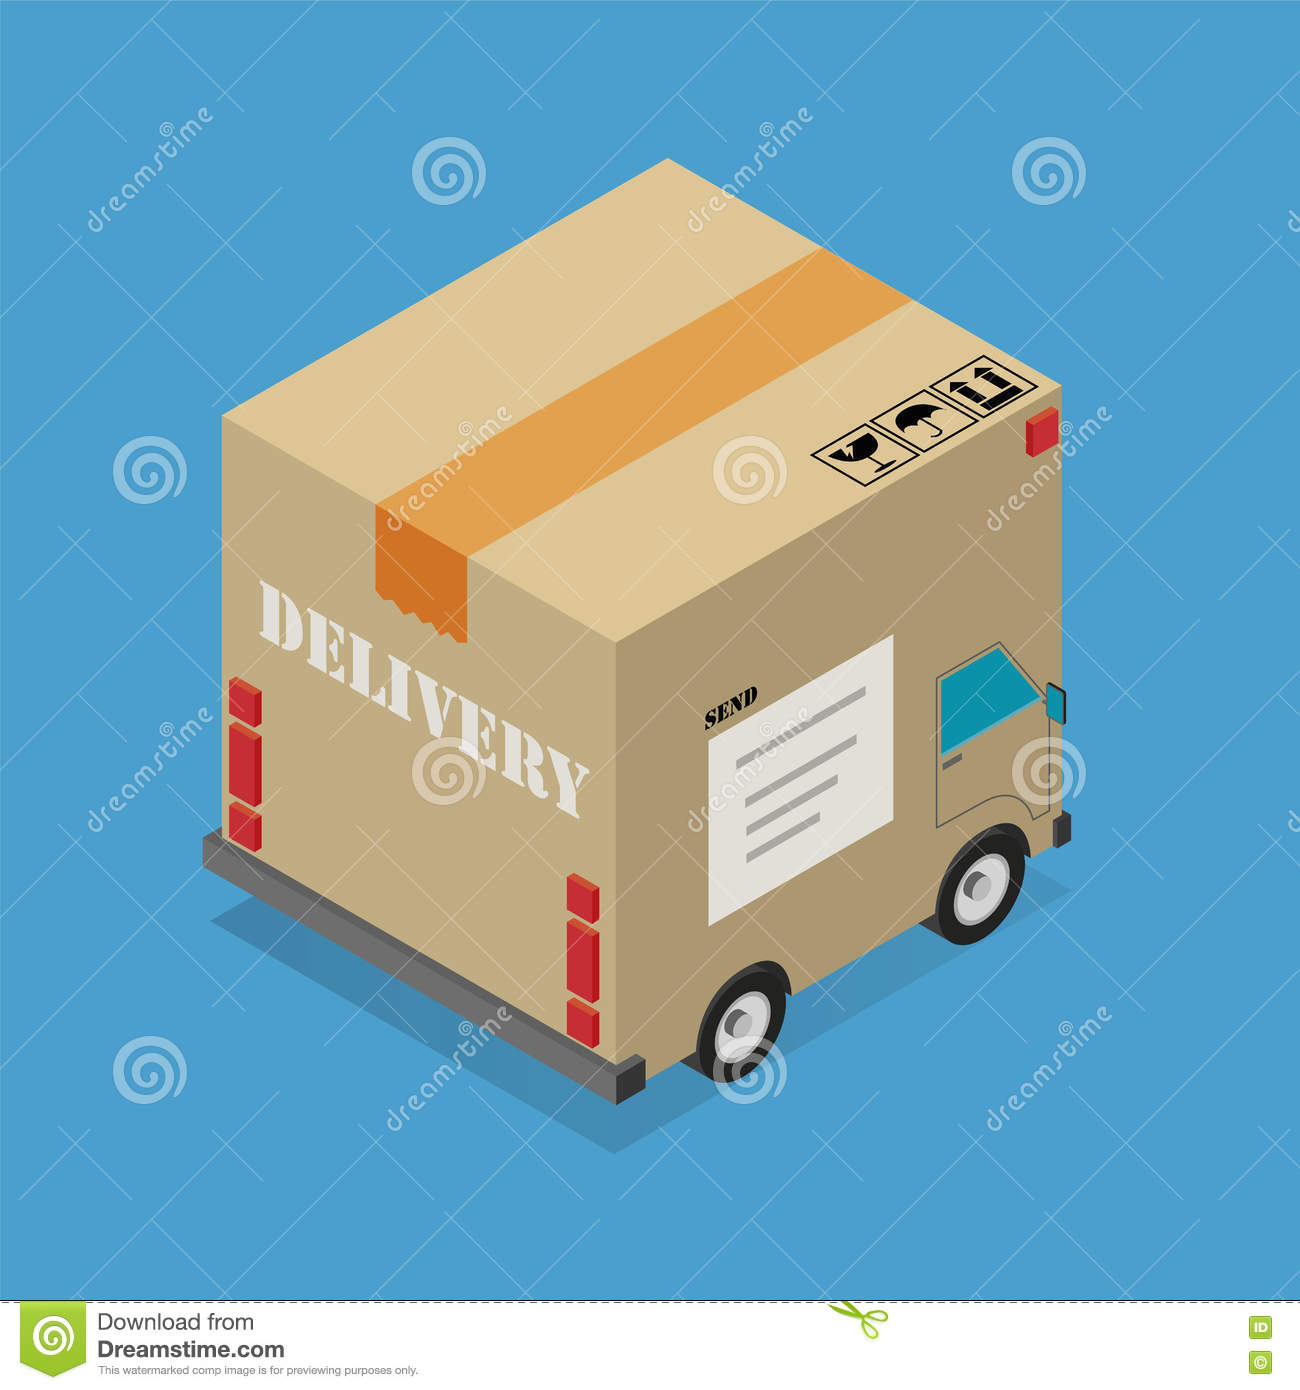 Delivery Cardboard Box Truck Stock Vector - Illustration of